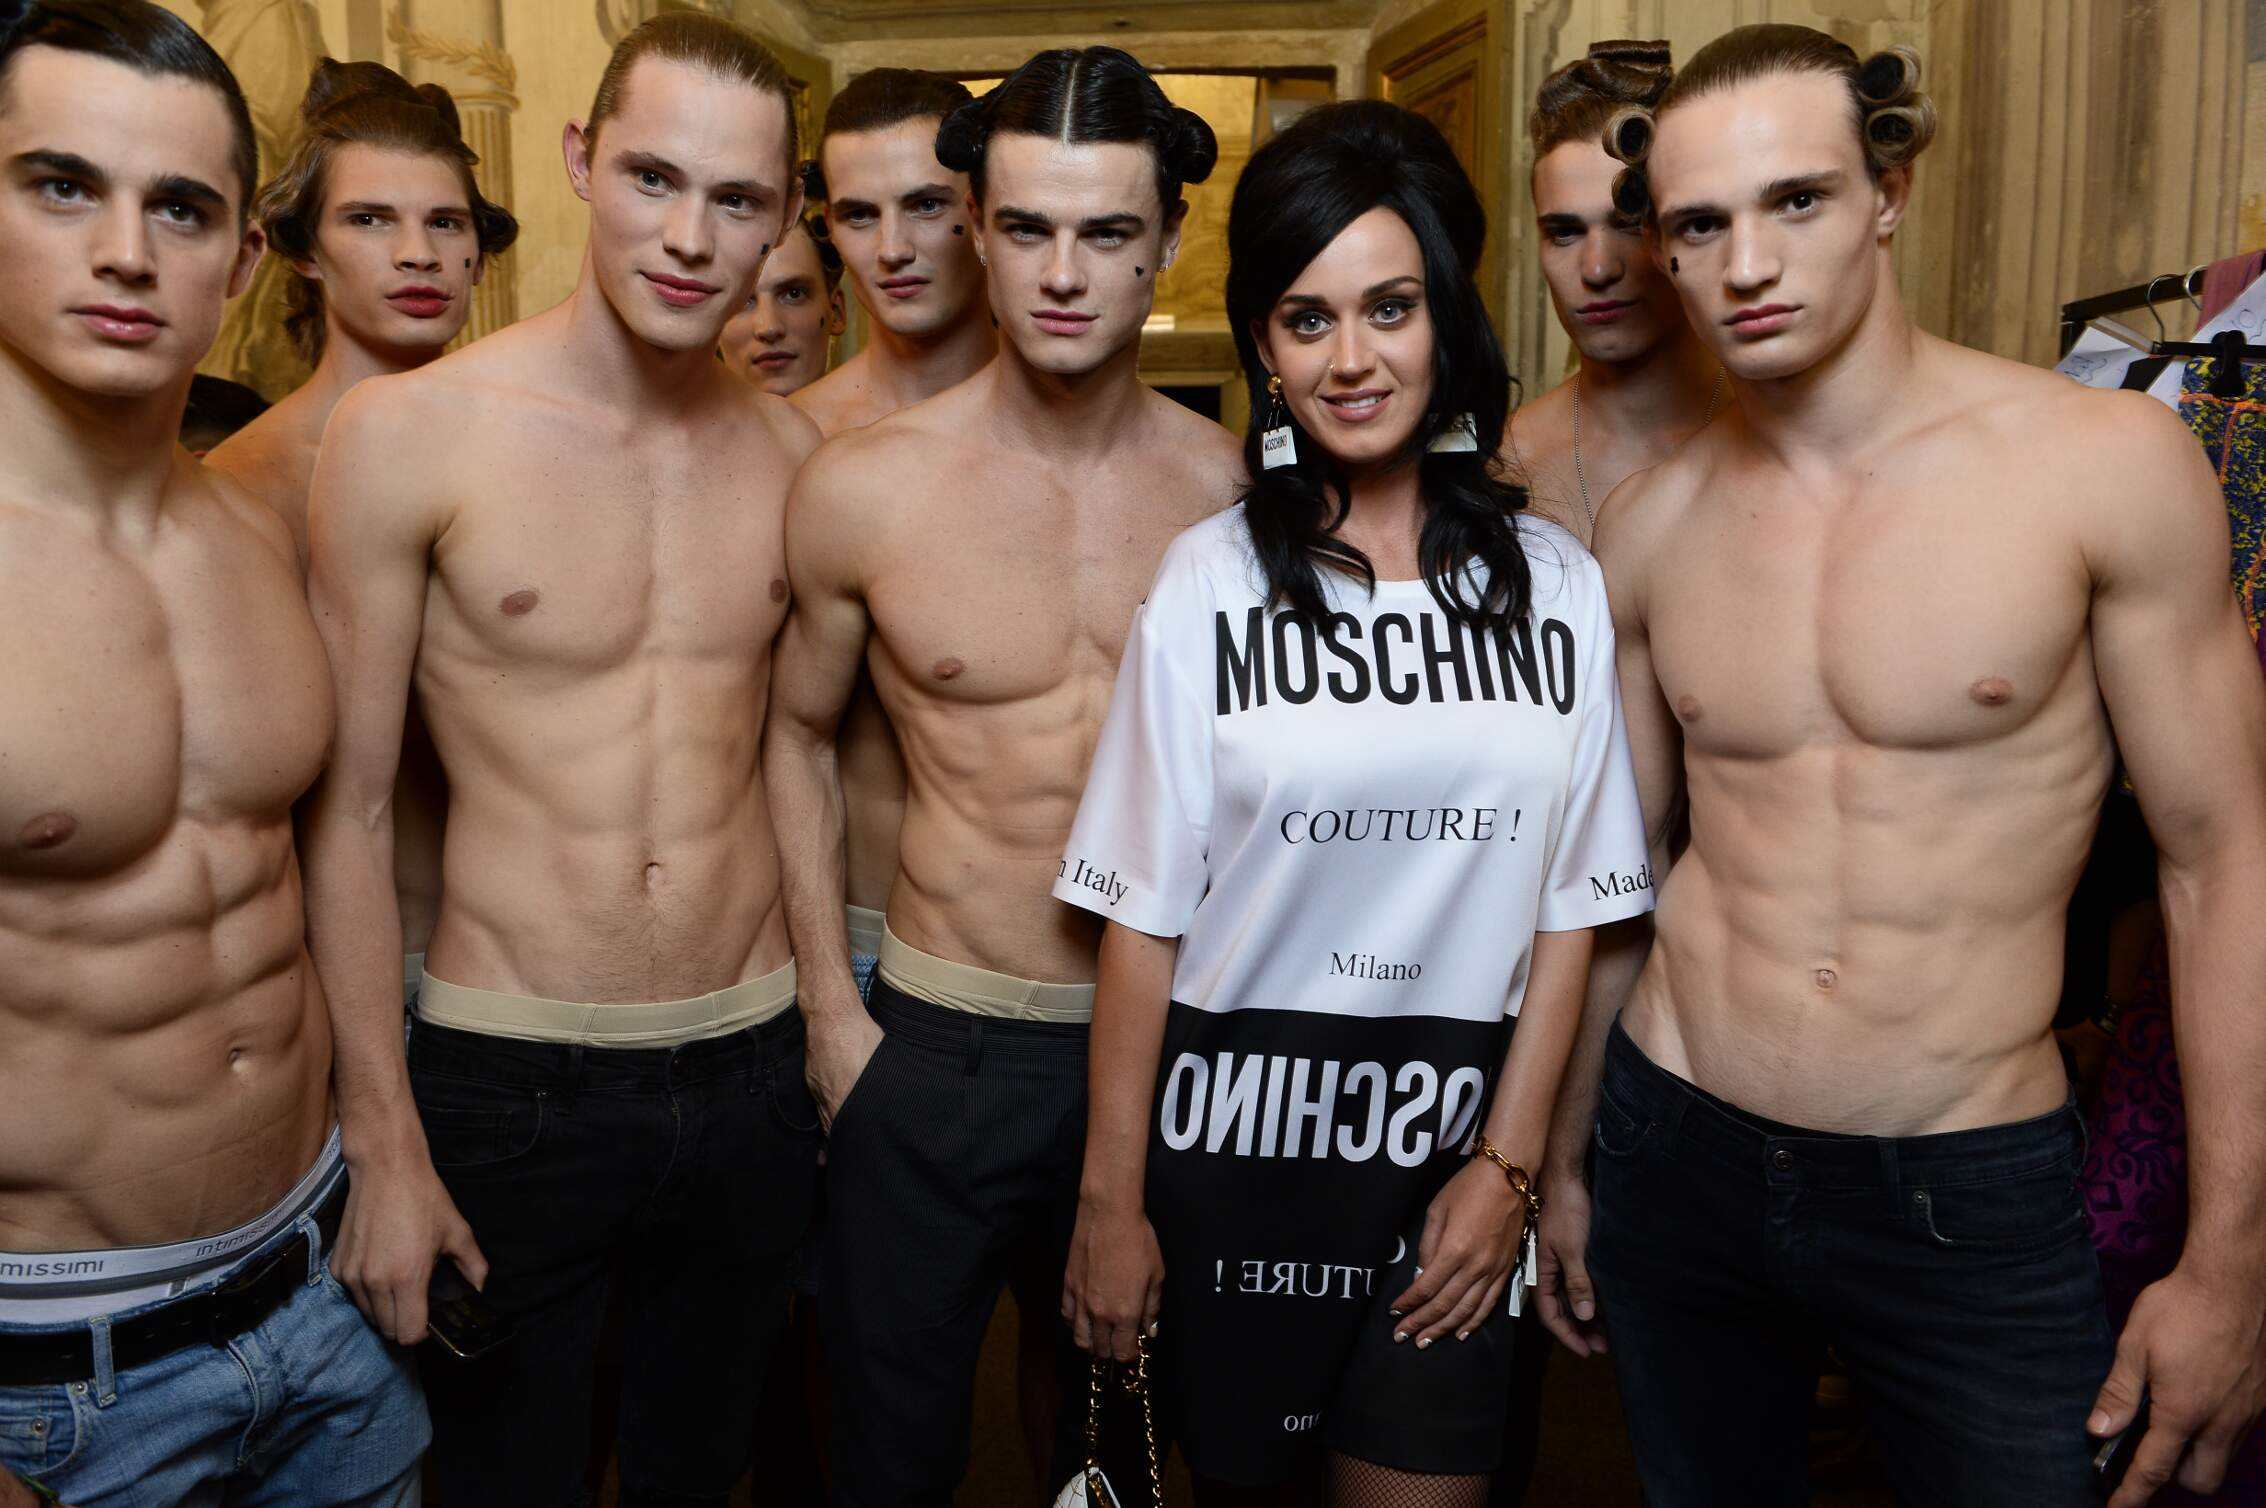 Backstage Moschino Models and Katy Perry